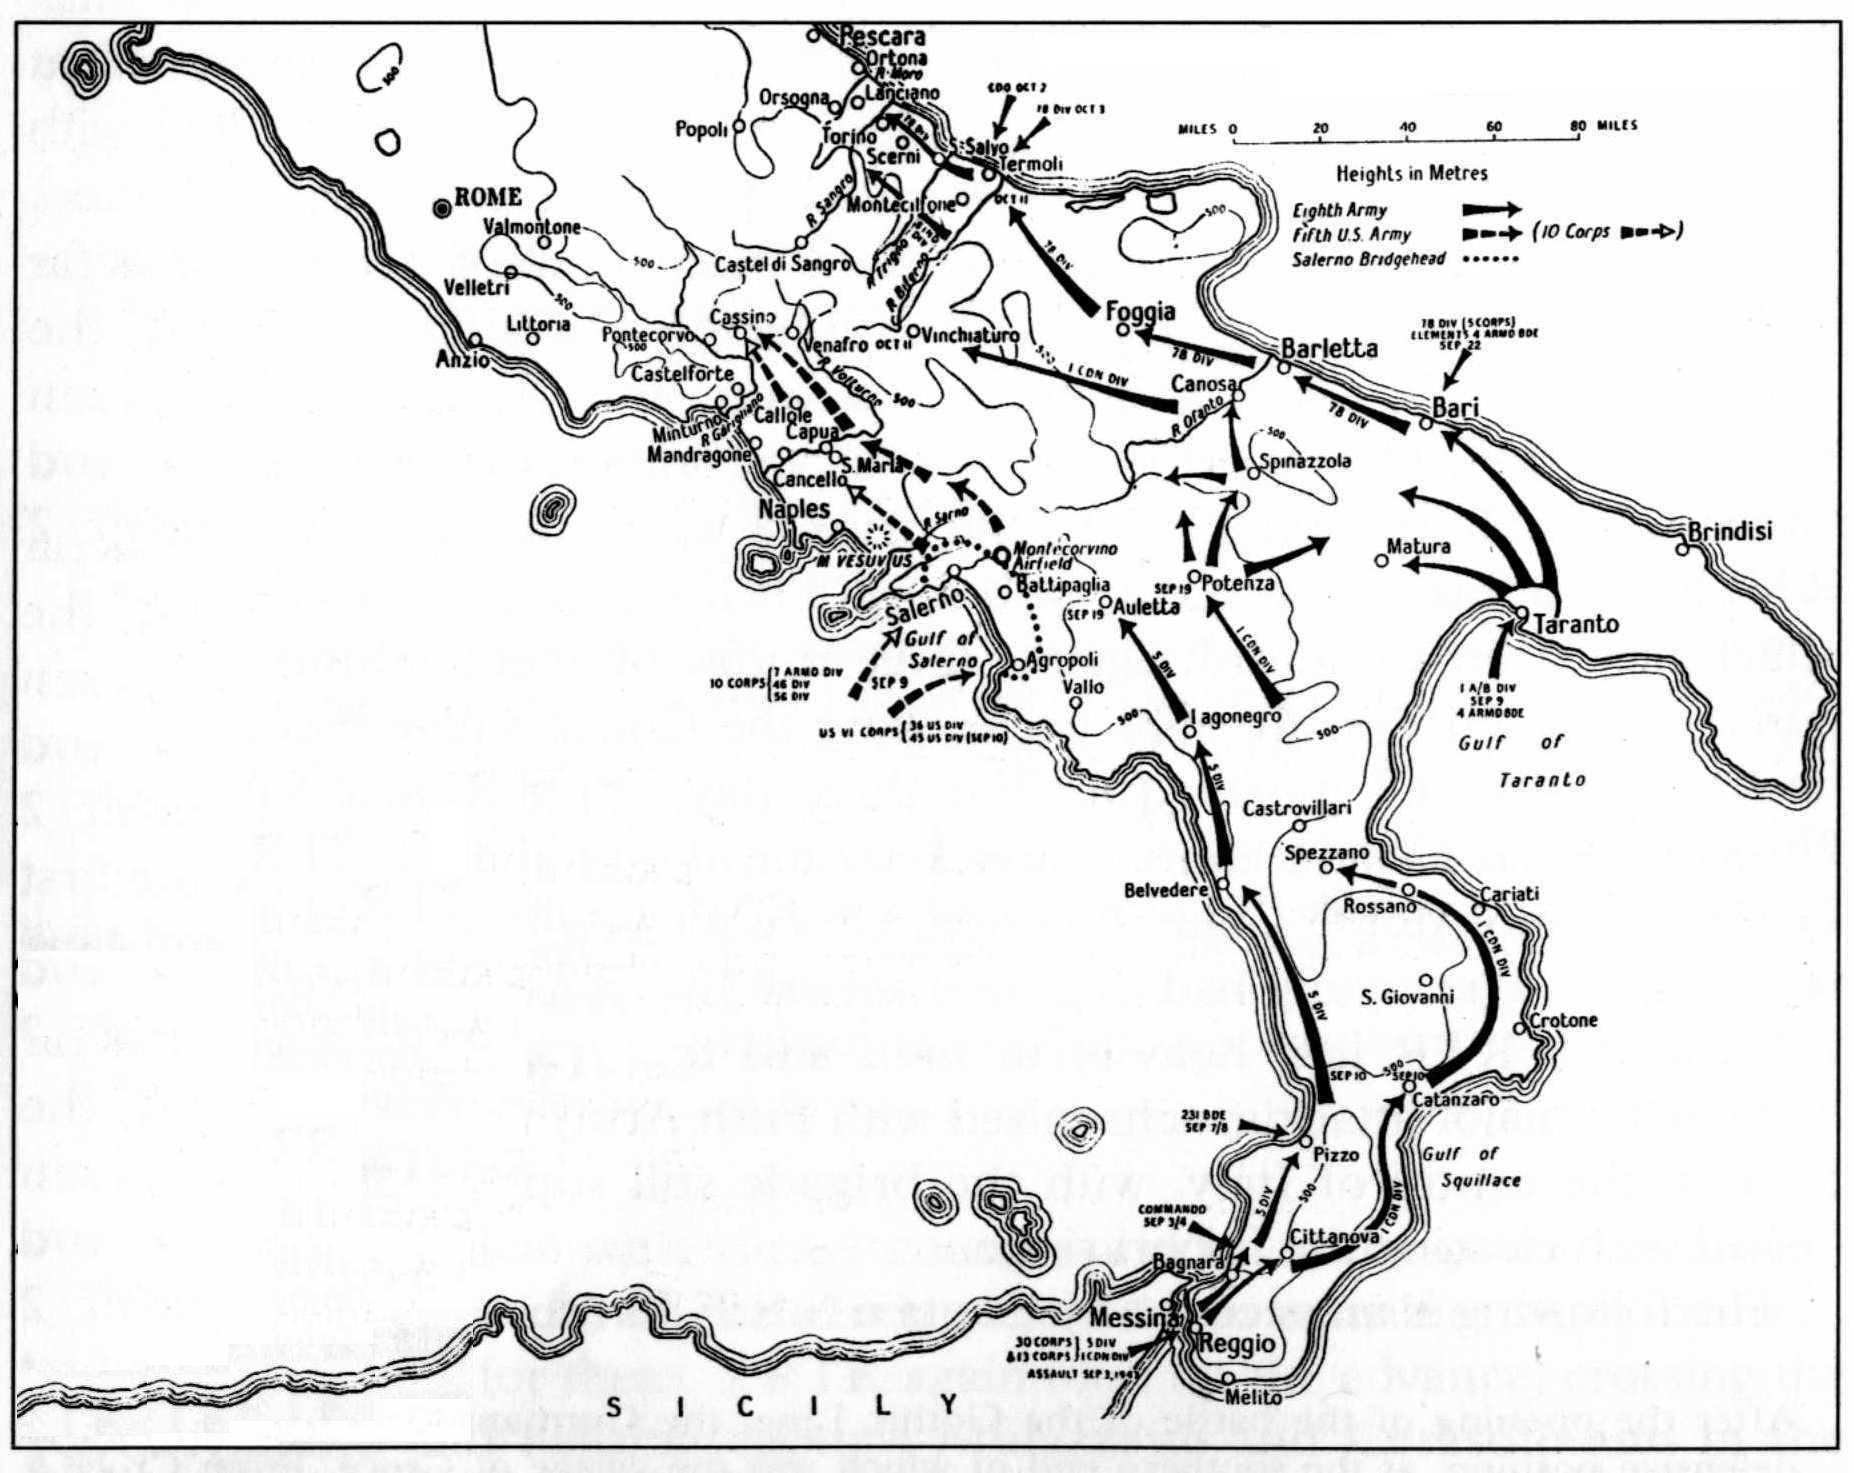 Engagements fought by the 7th Armoured Brigade in 1944